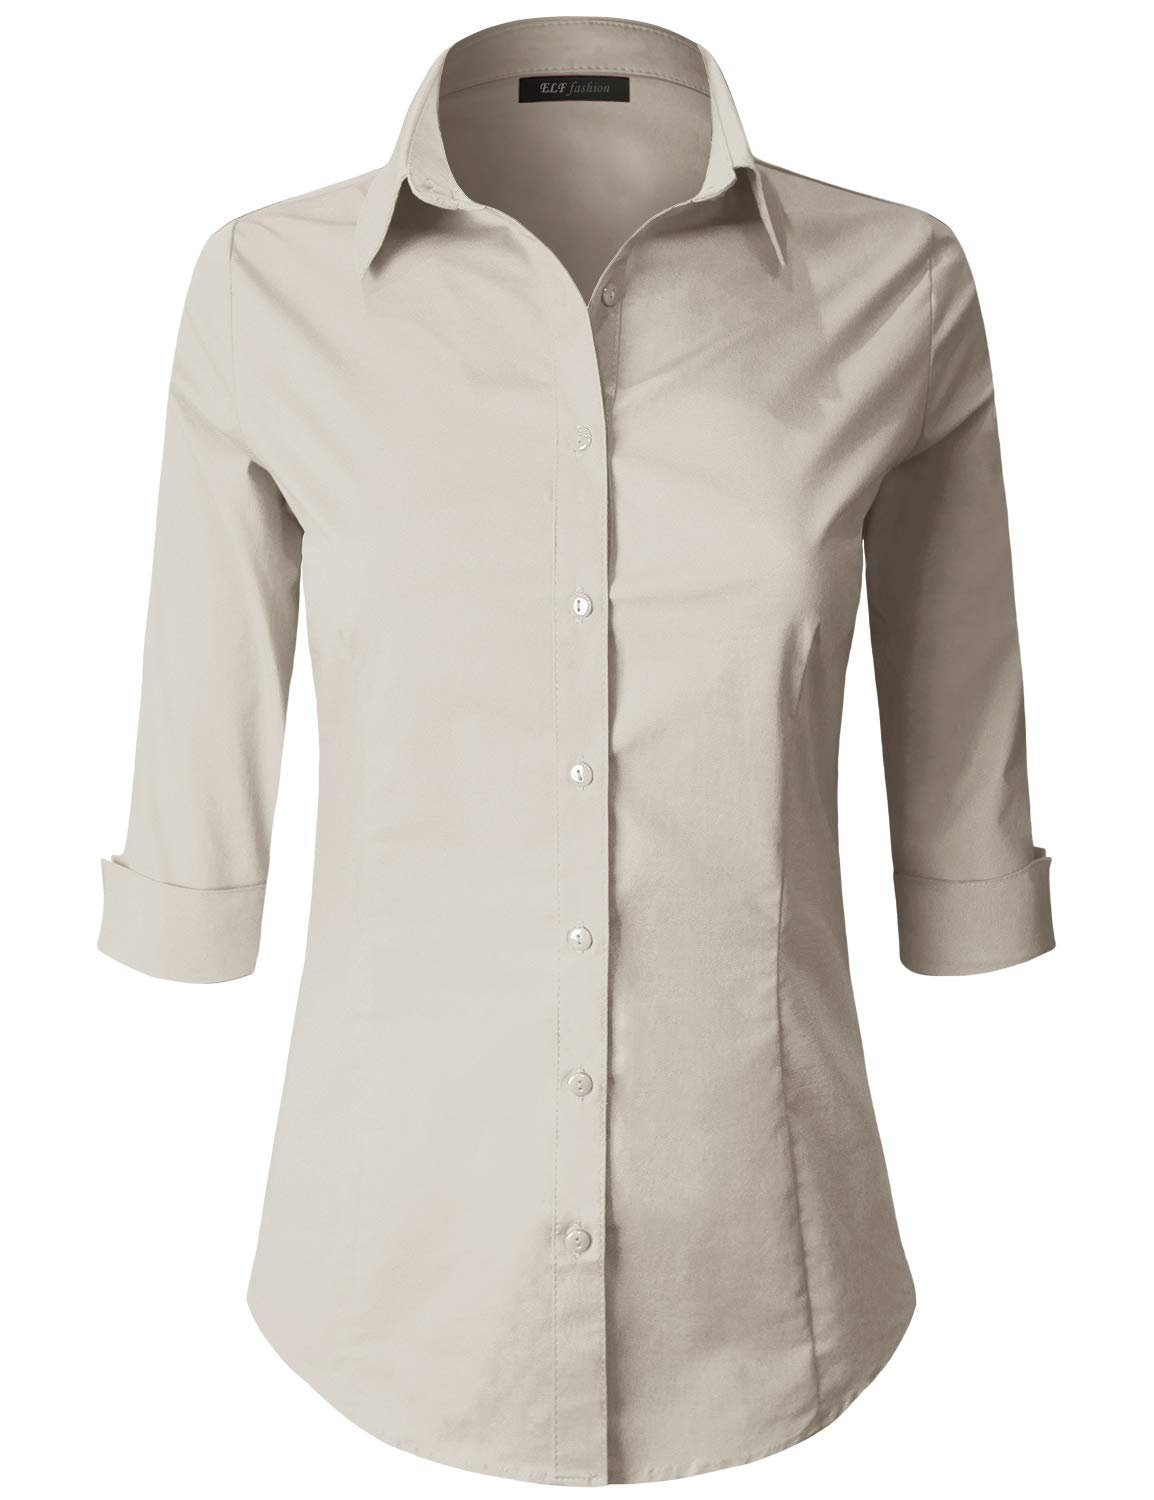 ELF FASHION 3/4 Sleeve Stretchy Button Down Collar Office Formal Casual Shirt Blouse for Women (Size S~6XL) Khaki M by ELF FASHION